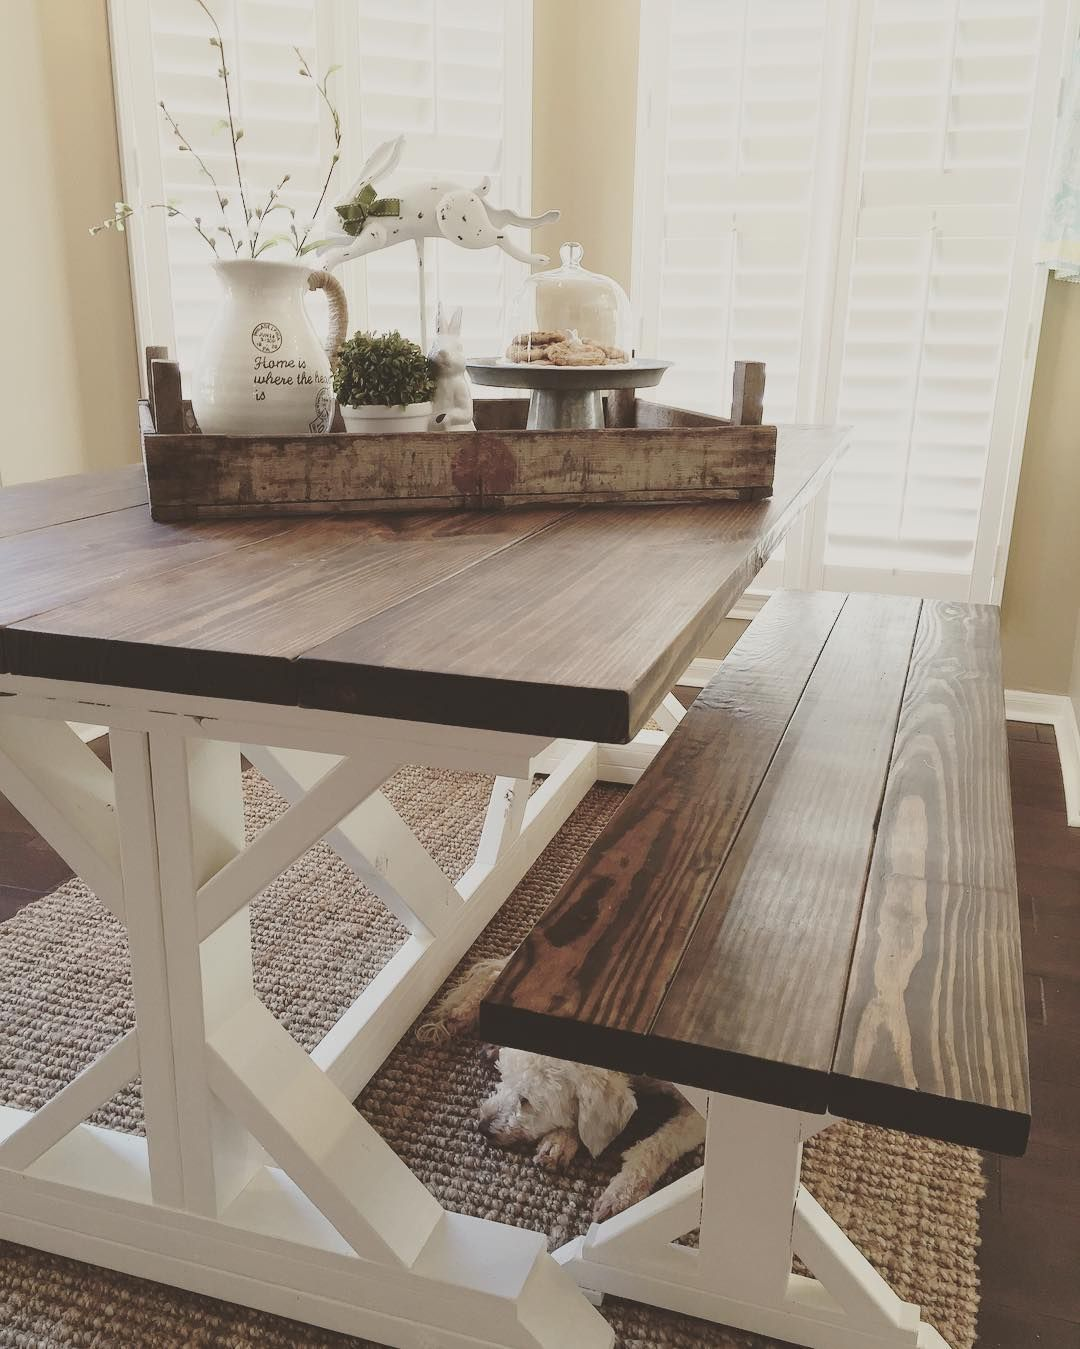 Antique farmhouse table i spy our dutch tulip crate beautifully styled on homedecormommaus